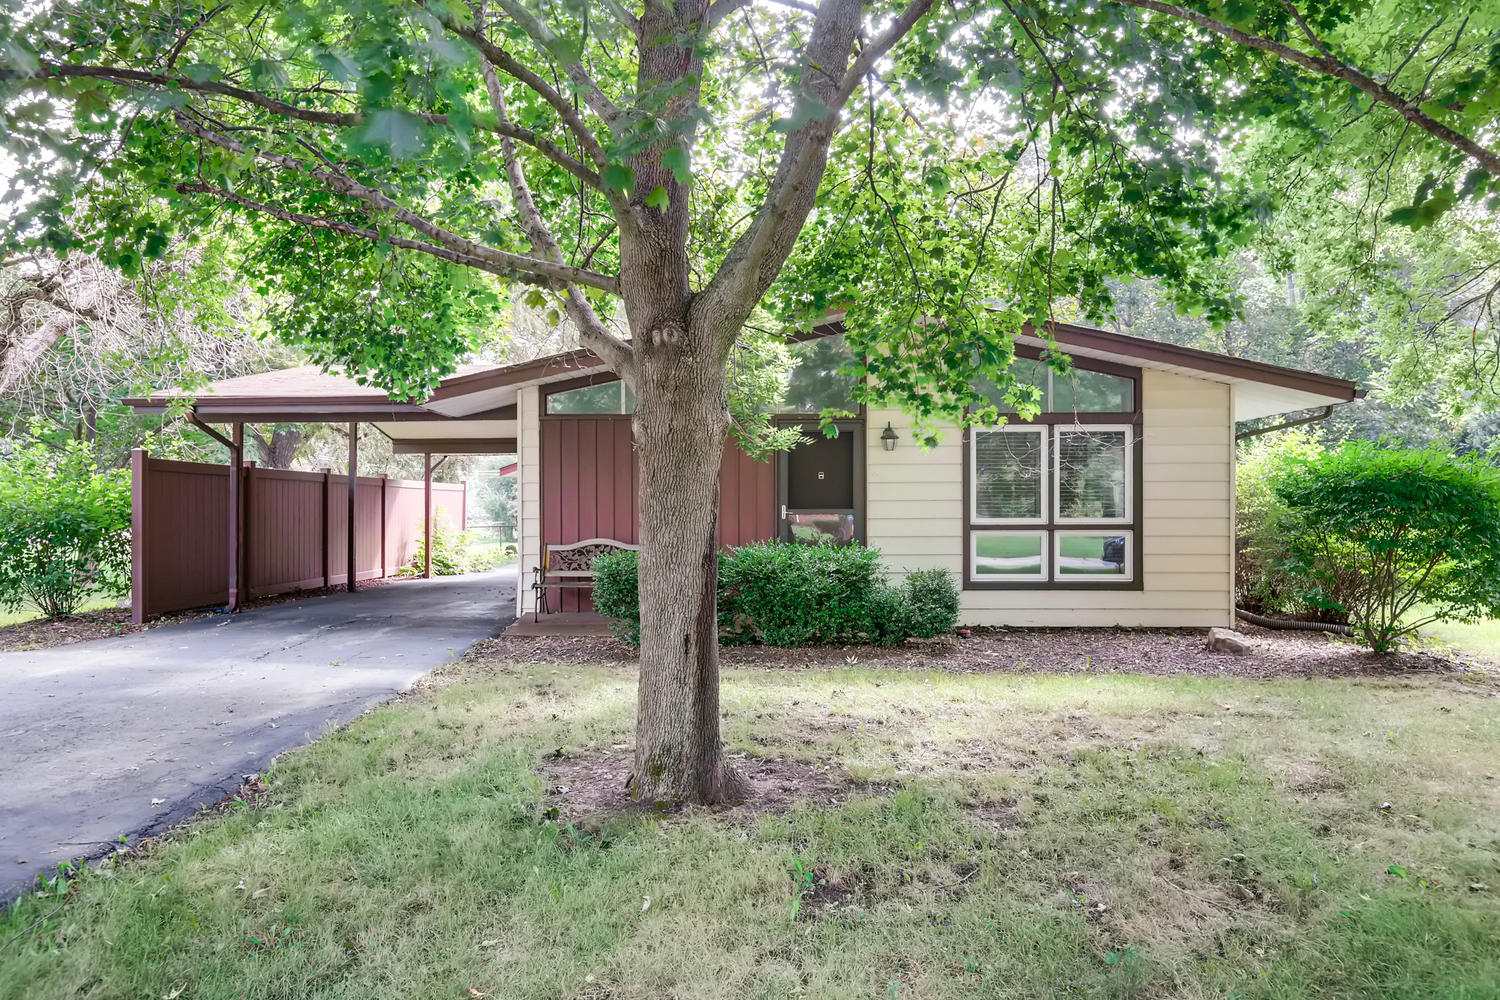 Photo of 30477 N Oak Grove Ave, Libertyville, IL, 60048